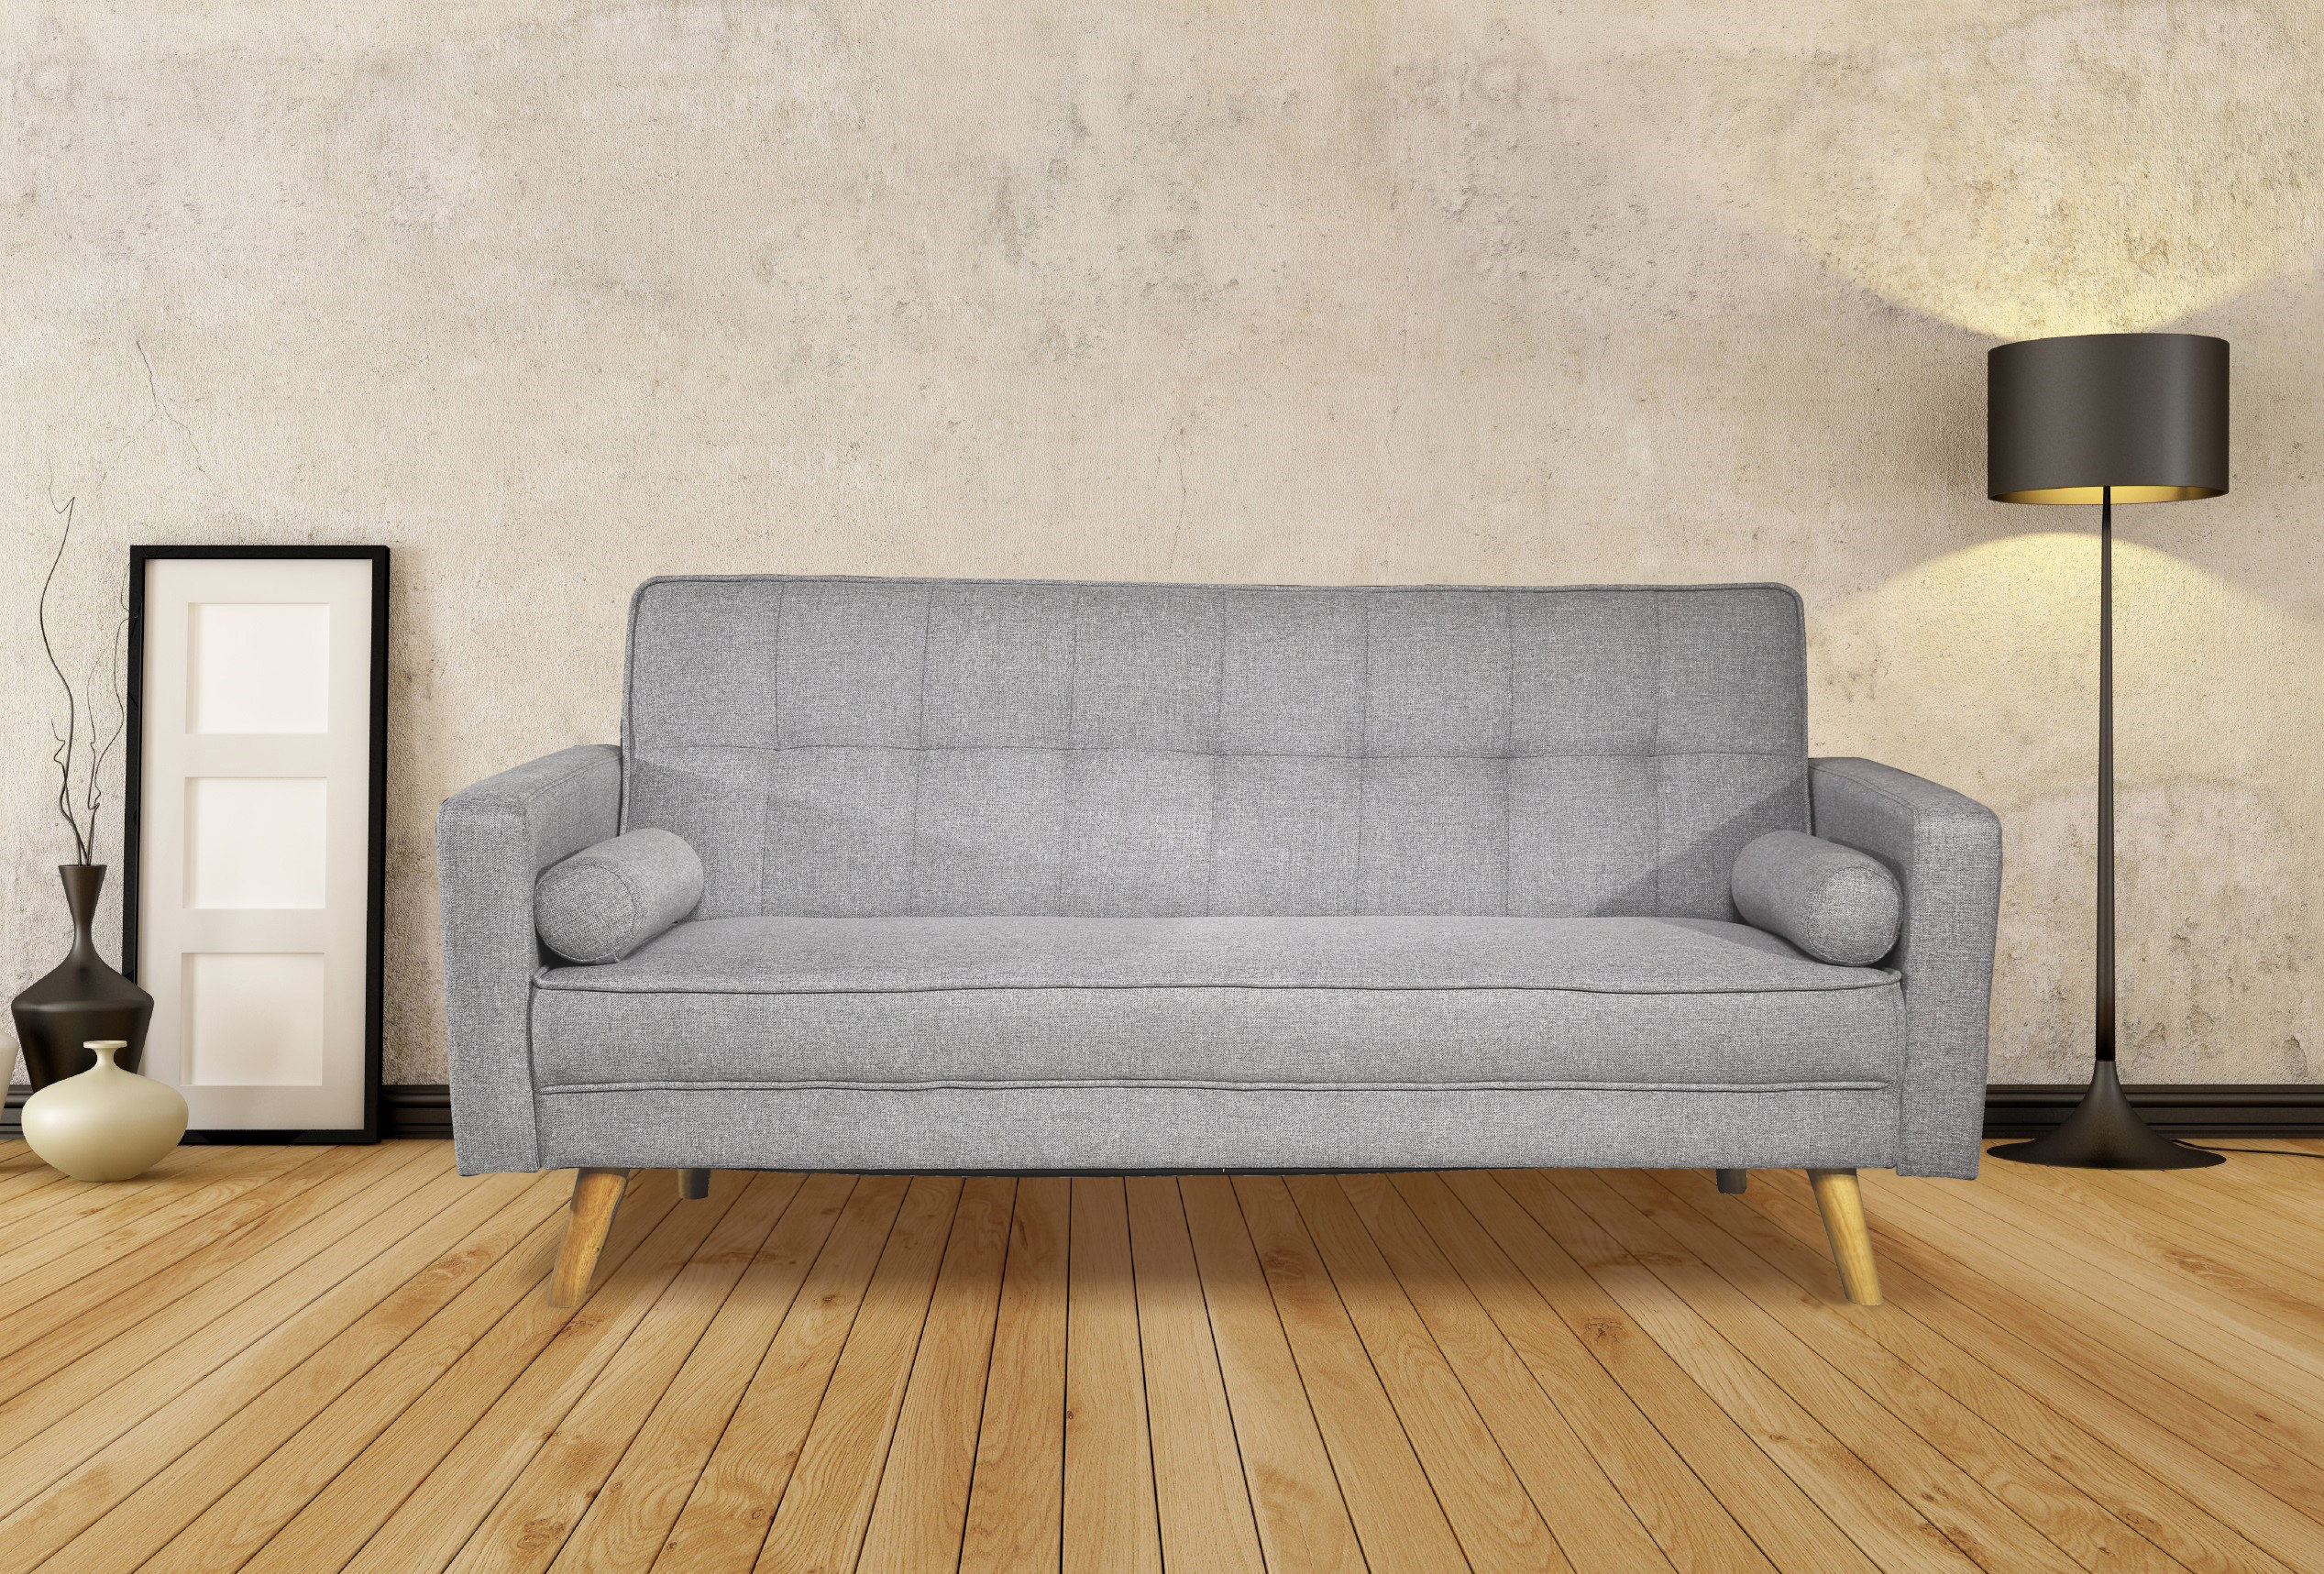 Boston 3 seater fabric sofa bed light grey or charcoal this stylish modern boston fabric sofa bed comes in either light grey or charcoal dark grey it would make a stunning addition to any home amipublicfo Choice Image